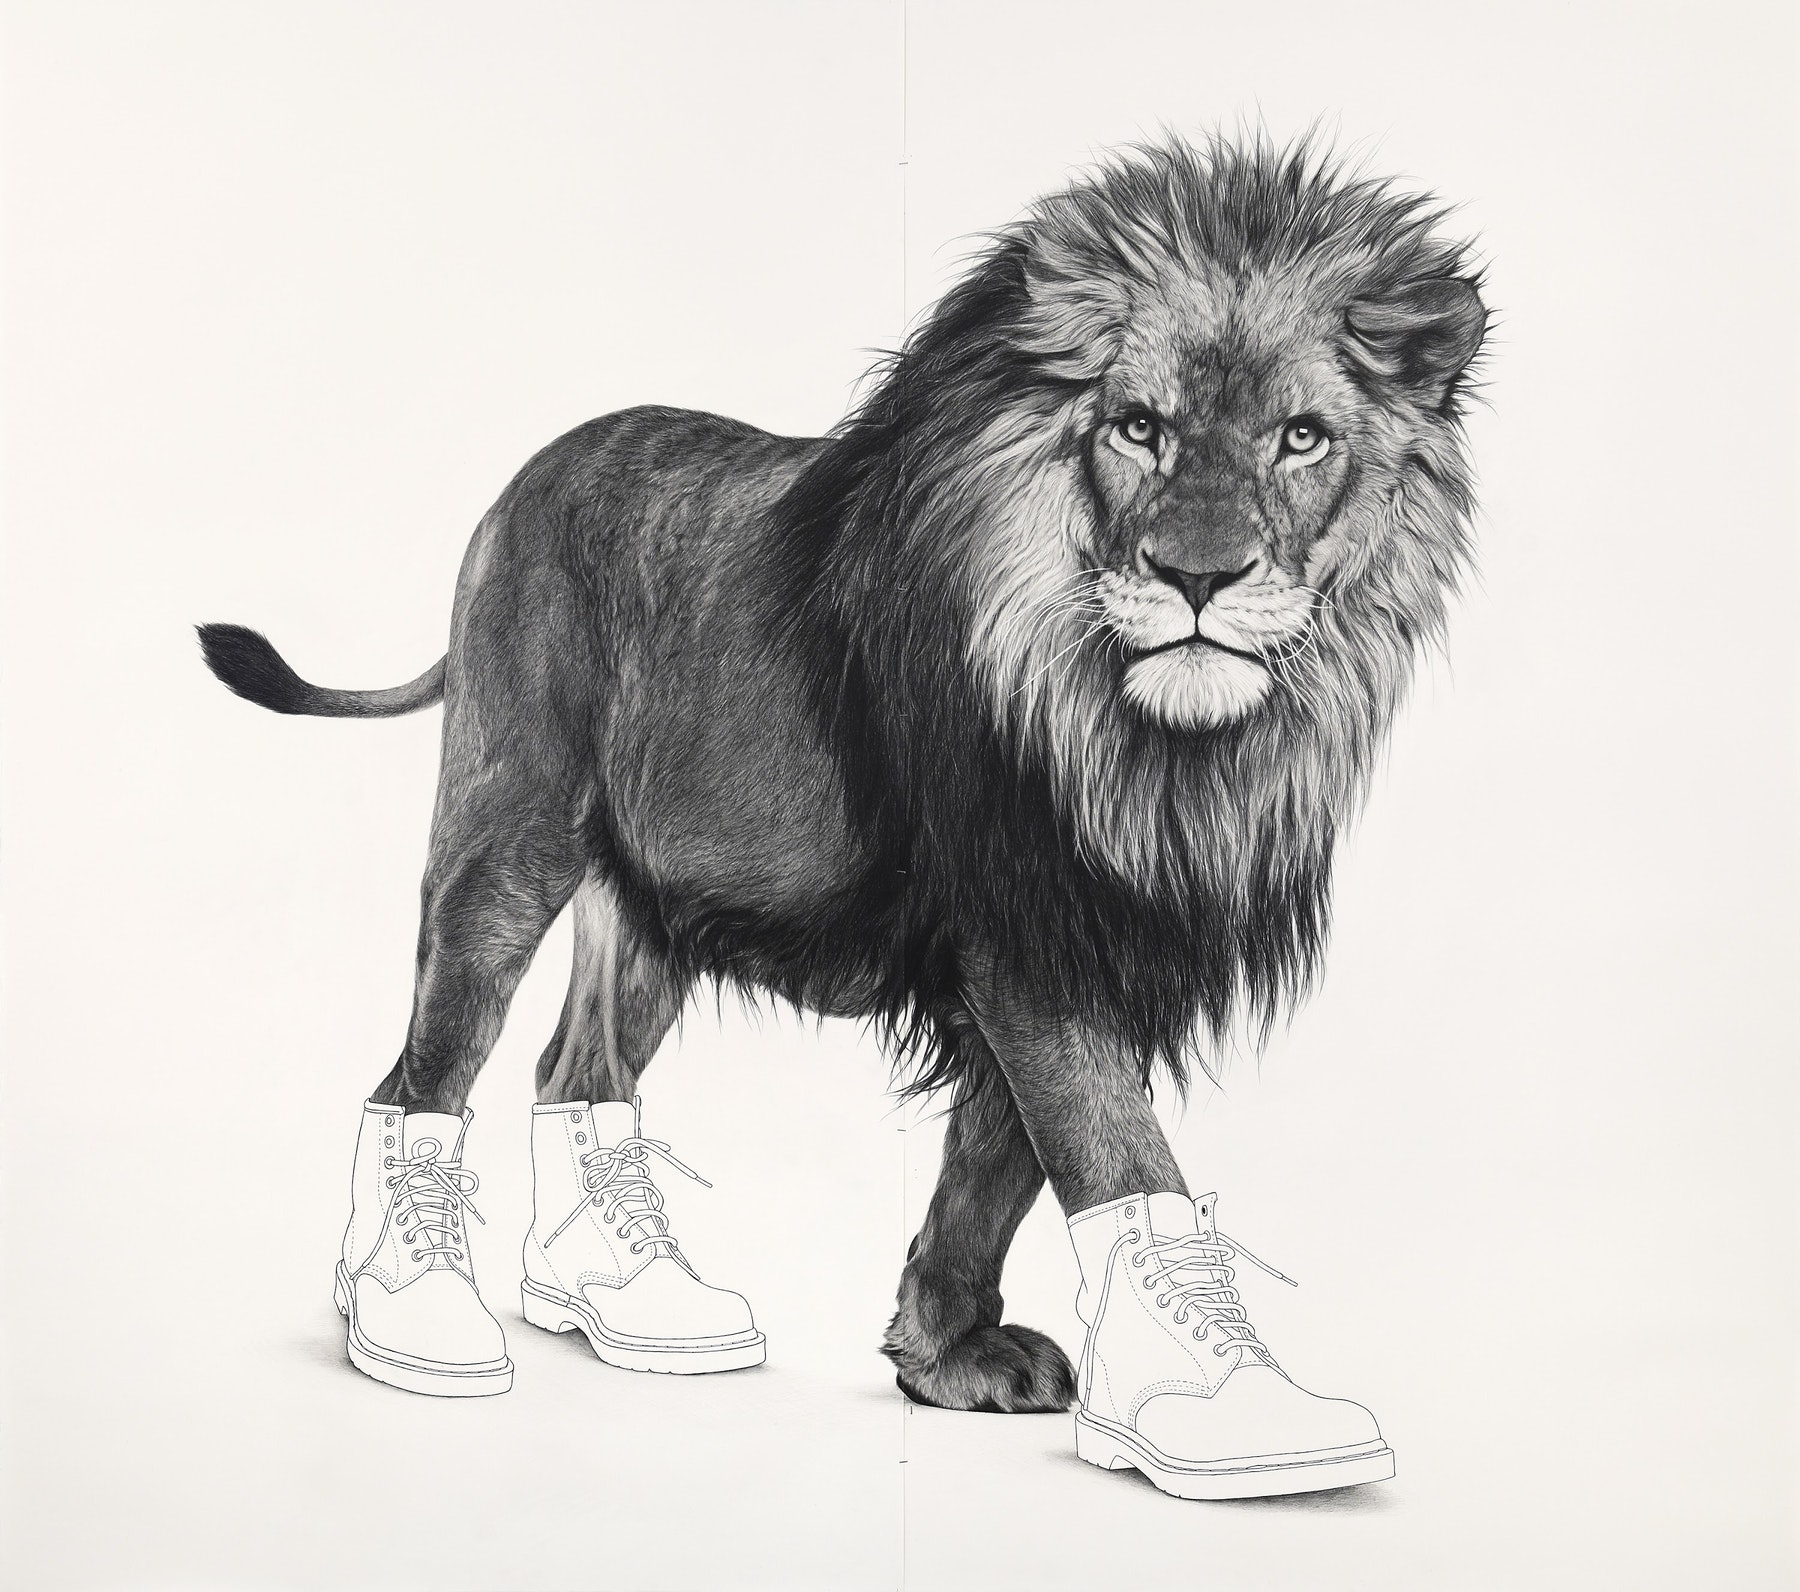 """Karl Haendel """"Lion 6,"""" 2020 Gouache, pencil and ink on paper 80 x 89.5"""" [HxW] (203.2 x 227.33 cm) Inventory #HAE578 Courtesy of the artist and Vielmetter Los Angeles"""